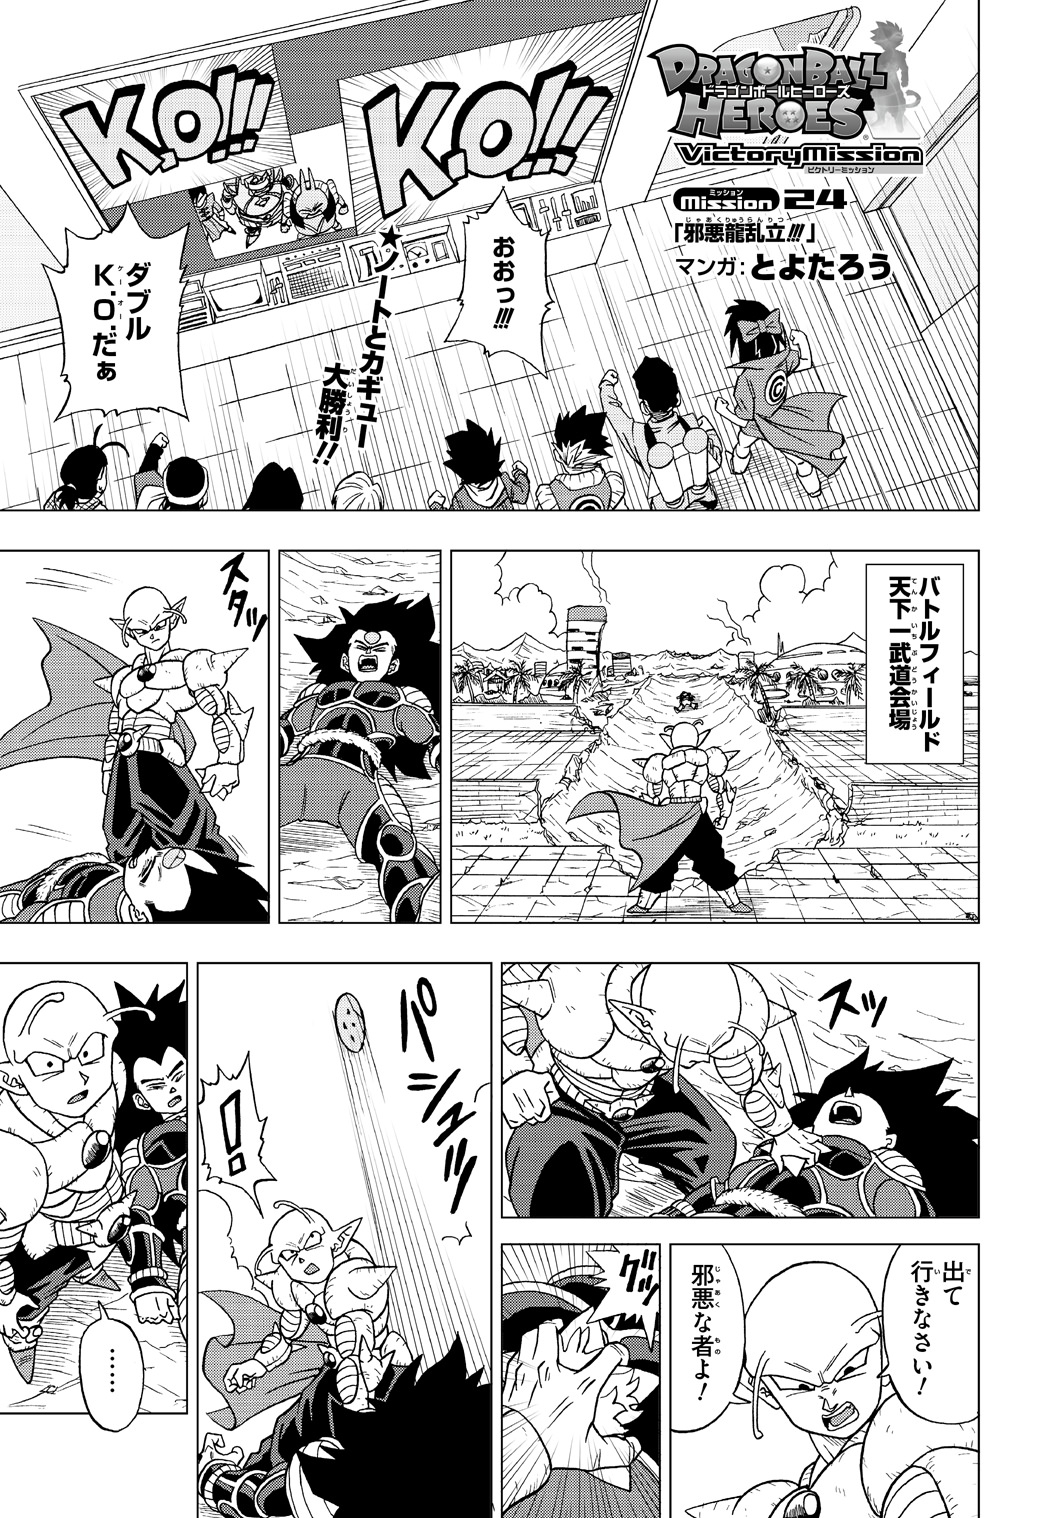 Dragon Ball Heroes Victory Mission Chapitre 024